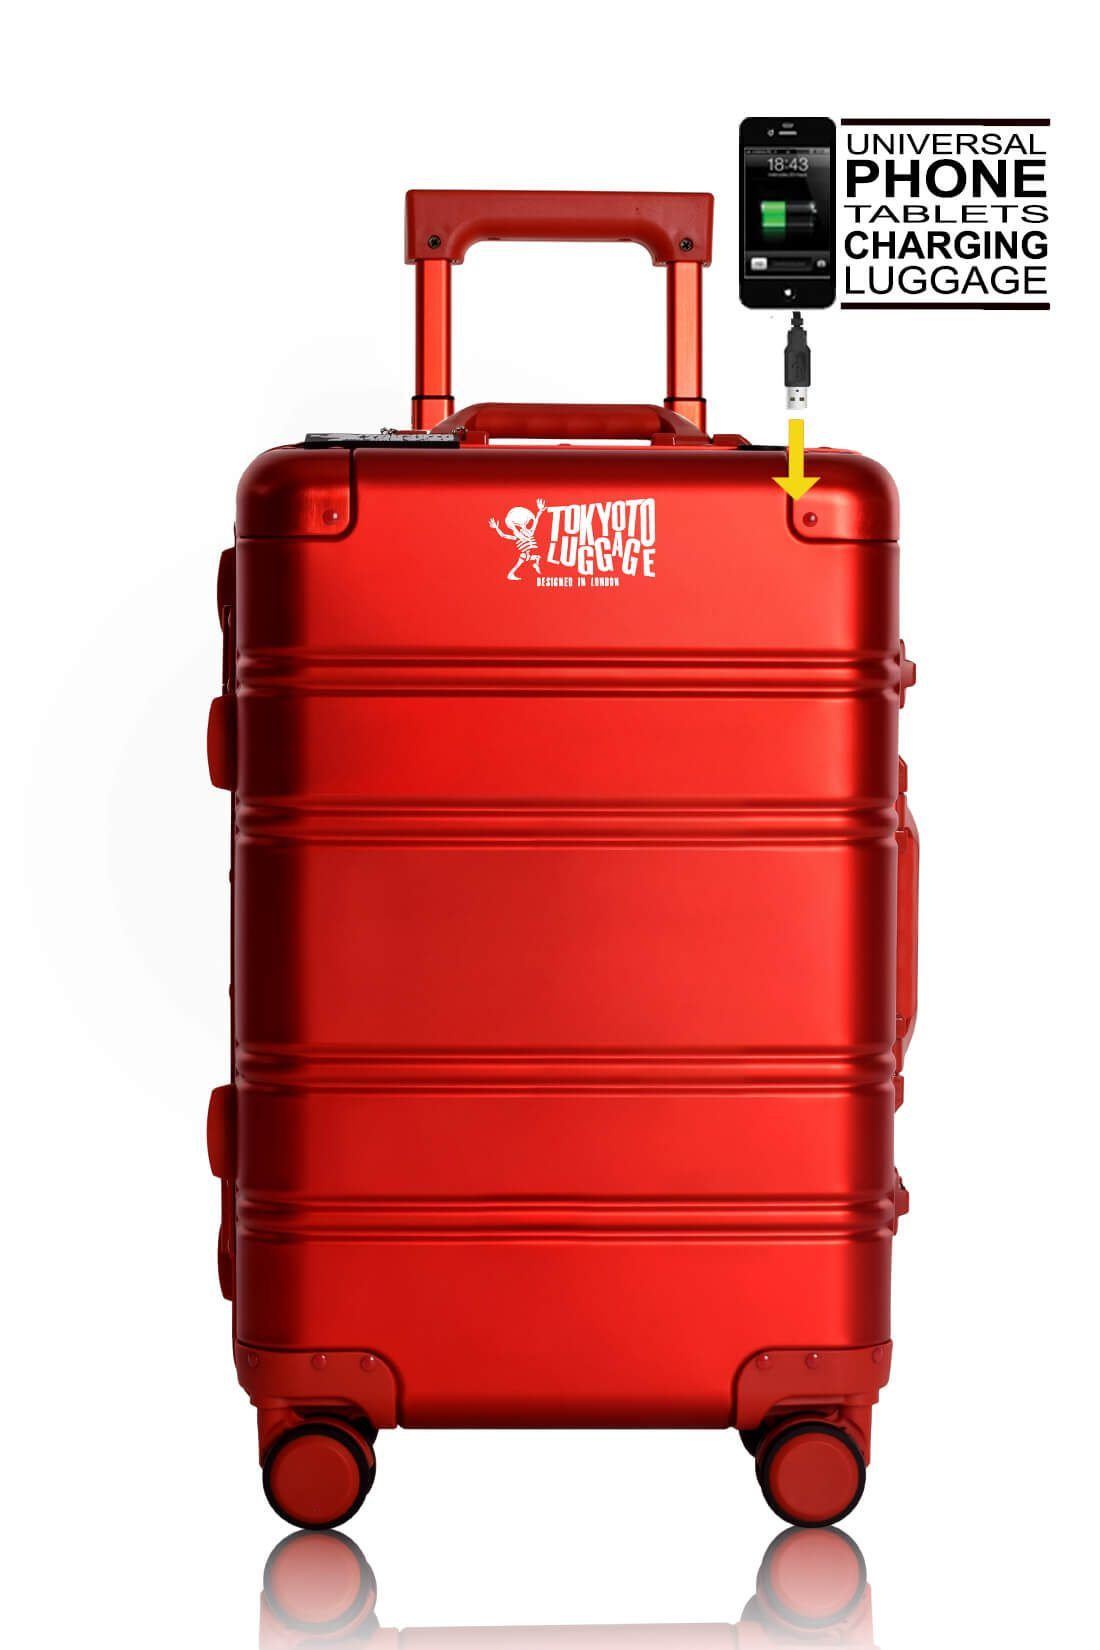 Valise Aluminium Online Cabine Trolley Avec Chargeur Powerbank TOKYOTO LUGGAGE Modelle RED LOGO 3